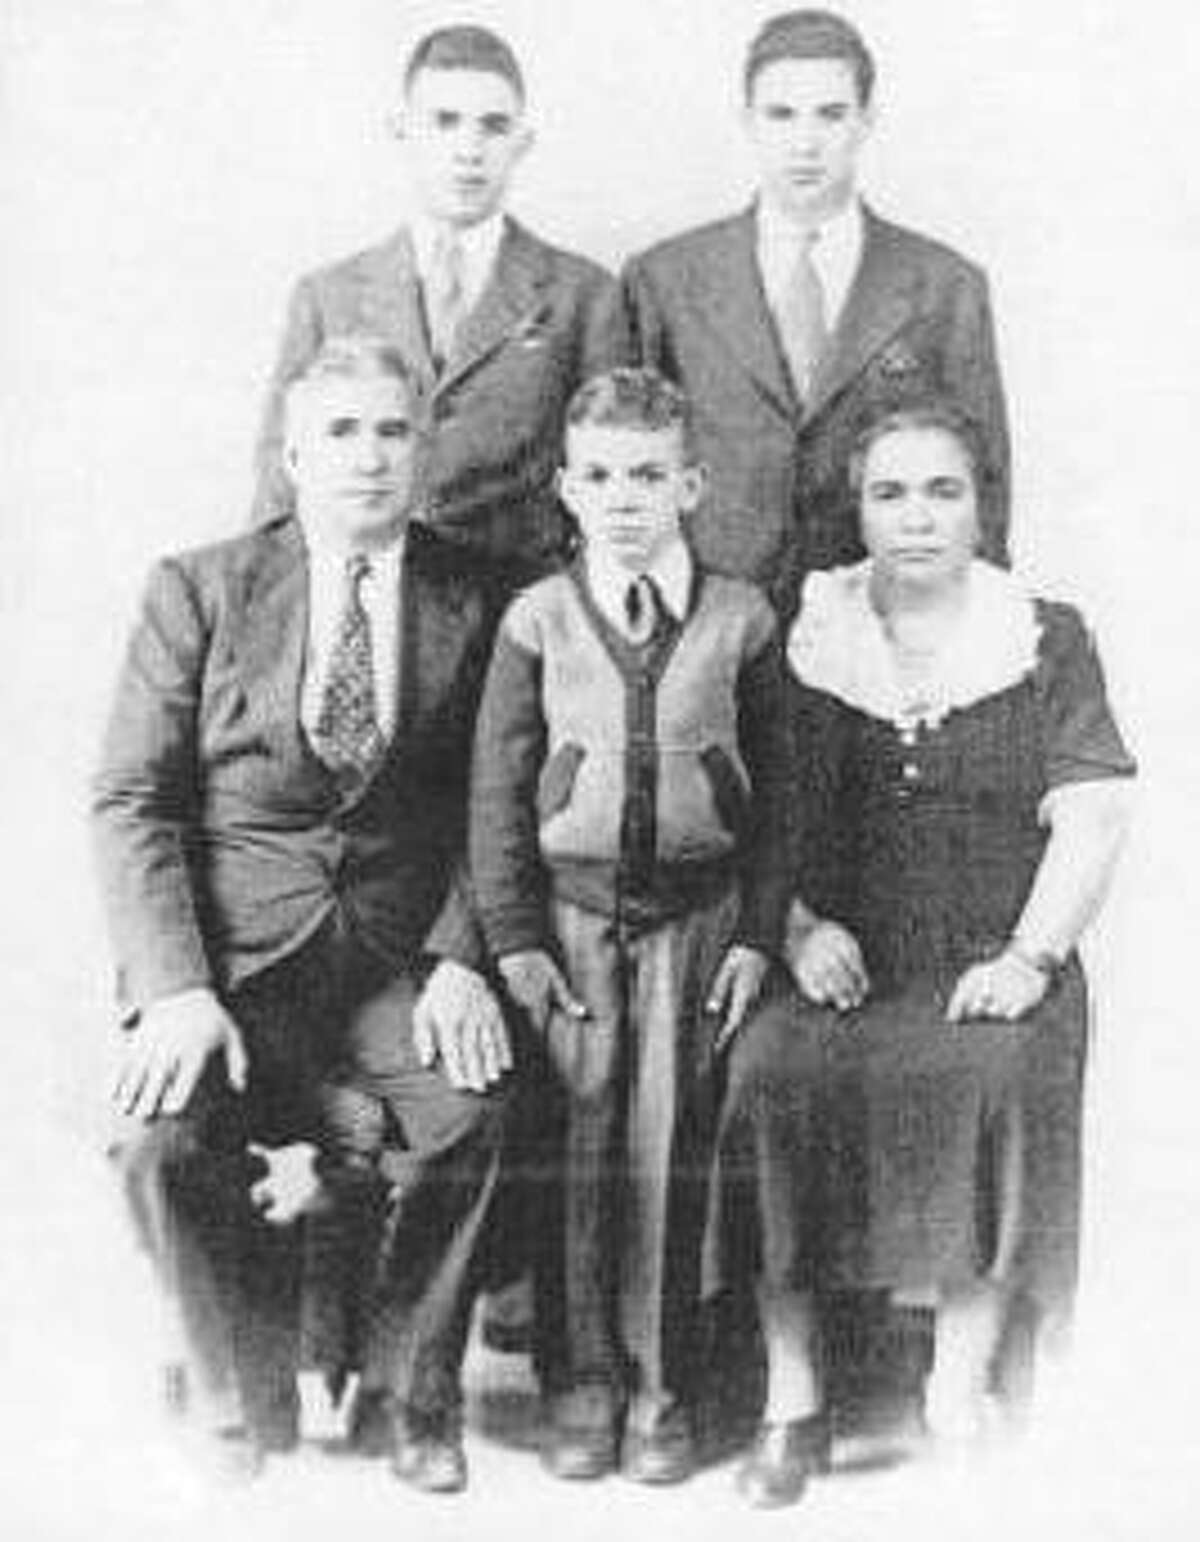 The Pantuso Family in early 1941. Nicola, or Nick, Frank's father, is in the front left. Frank is in the back right.